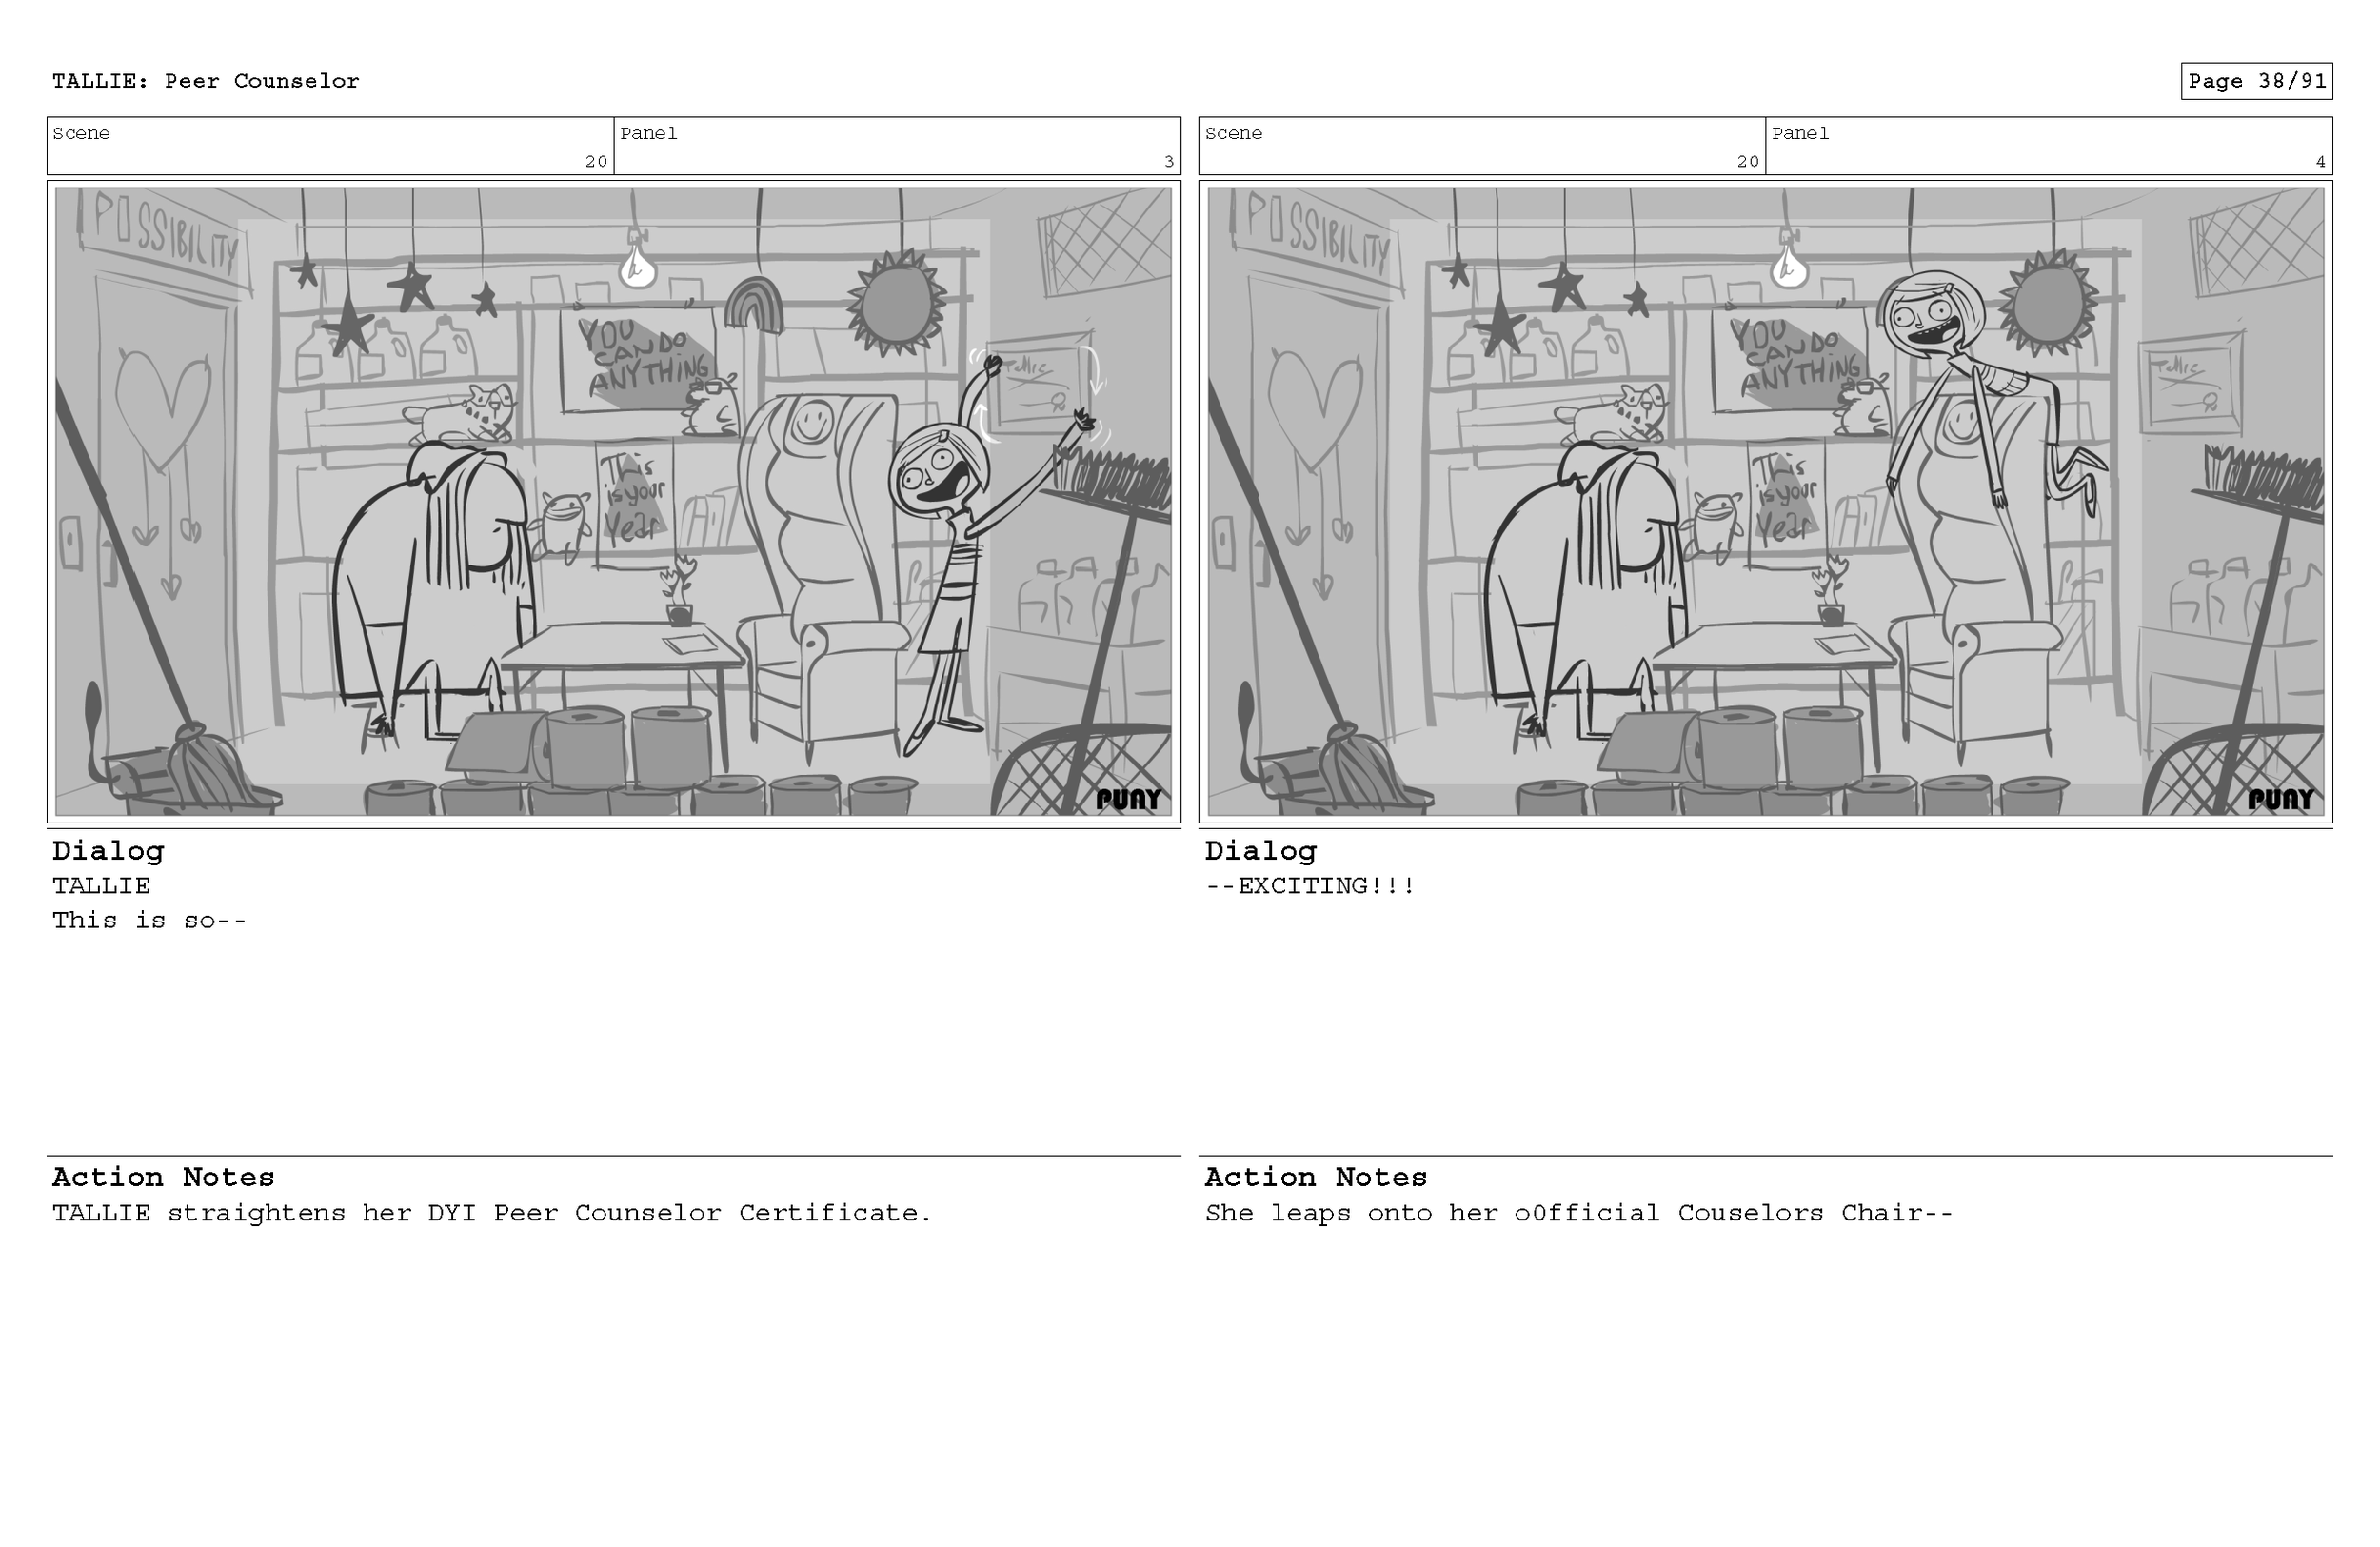 MikeOwens_STORYBOARDS_TallieSilverman_Page_39.png